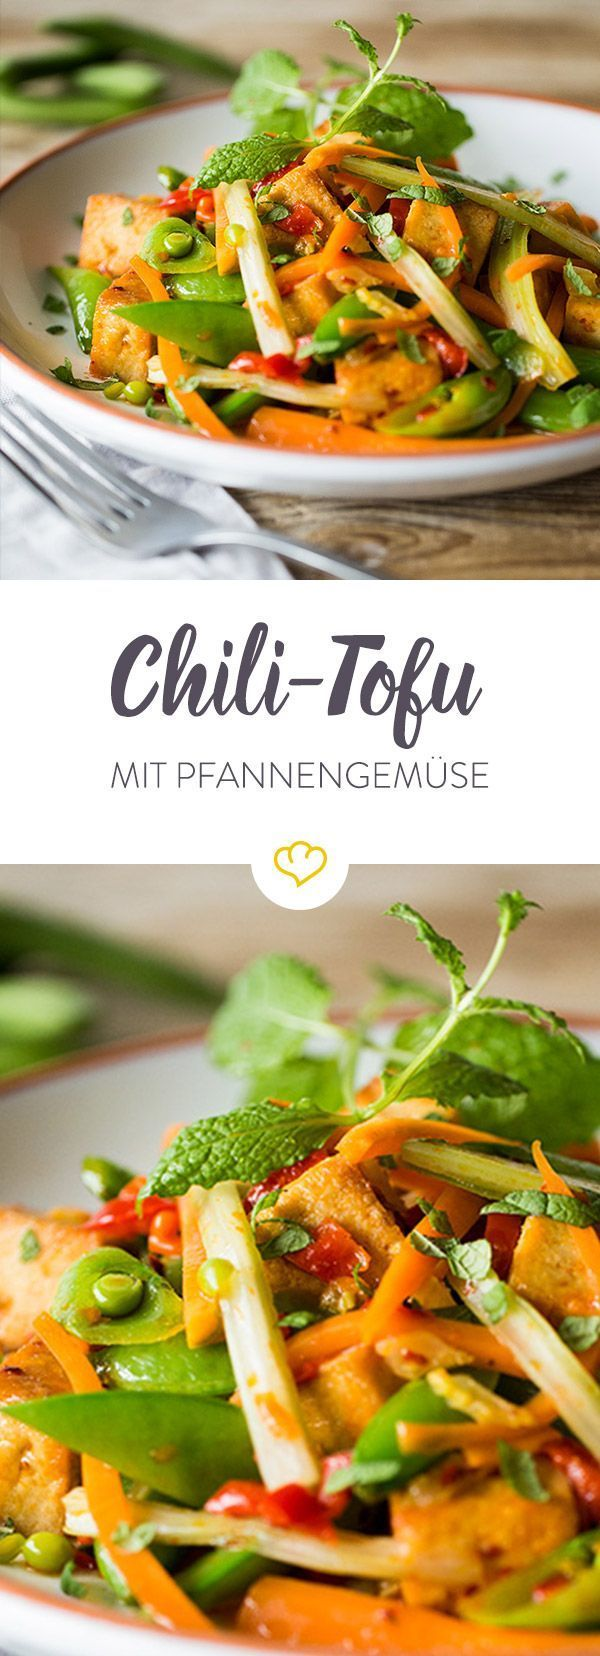 Photo of Chili tofu with colorful pan vegetables